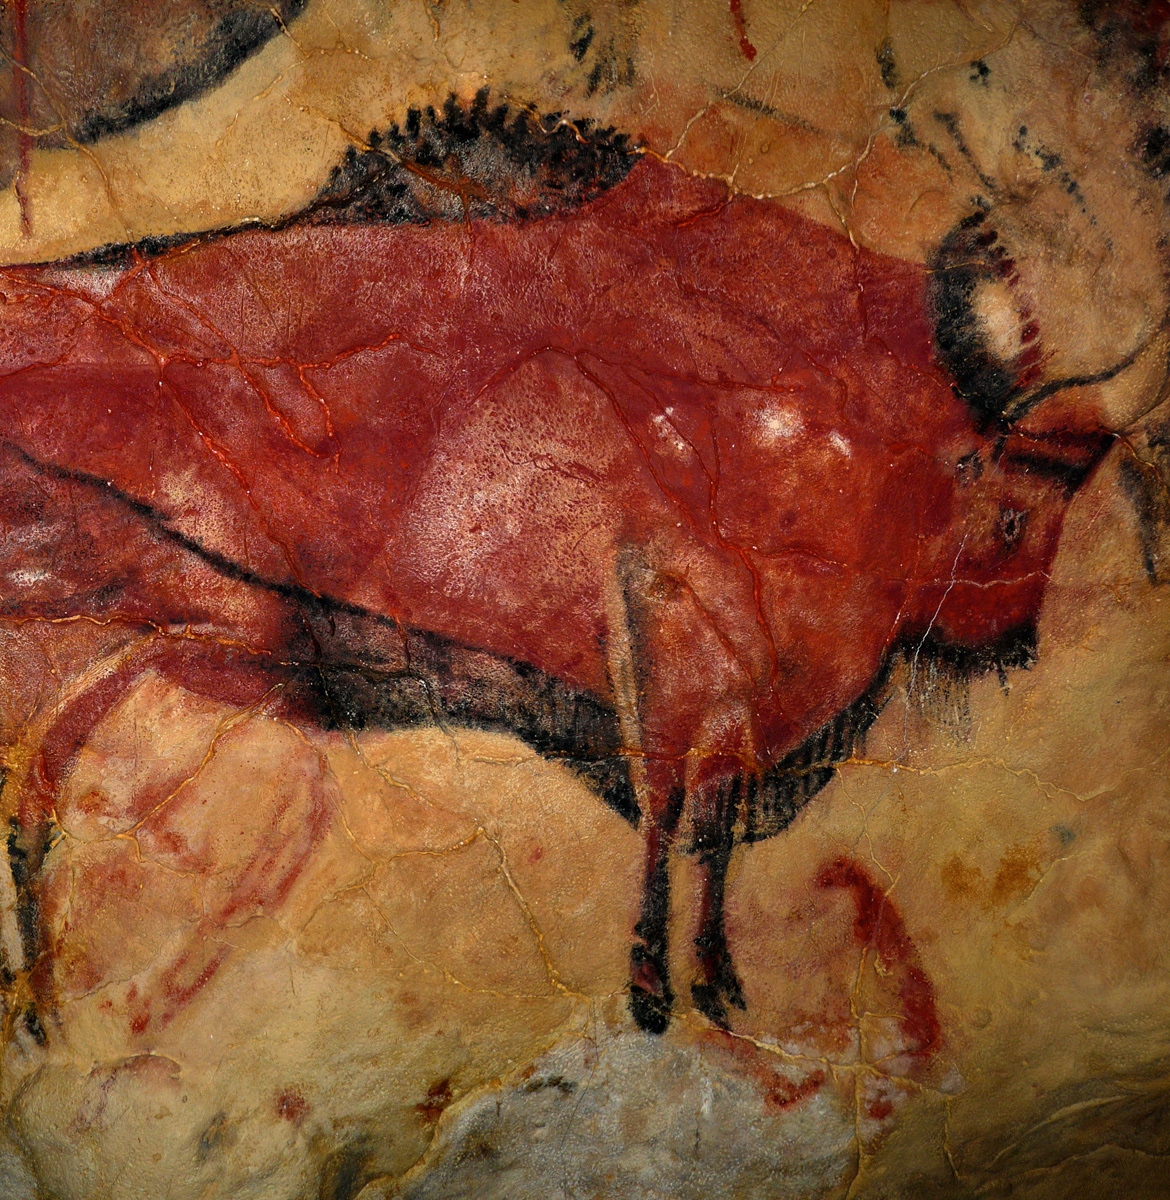 visual ideas from cavemen - cave drawings